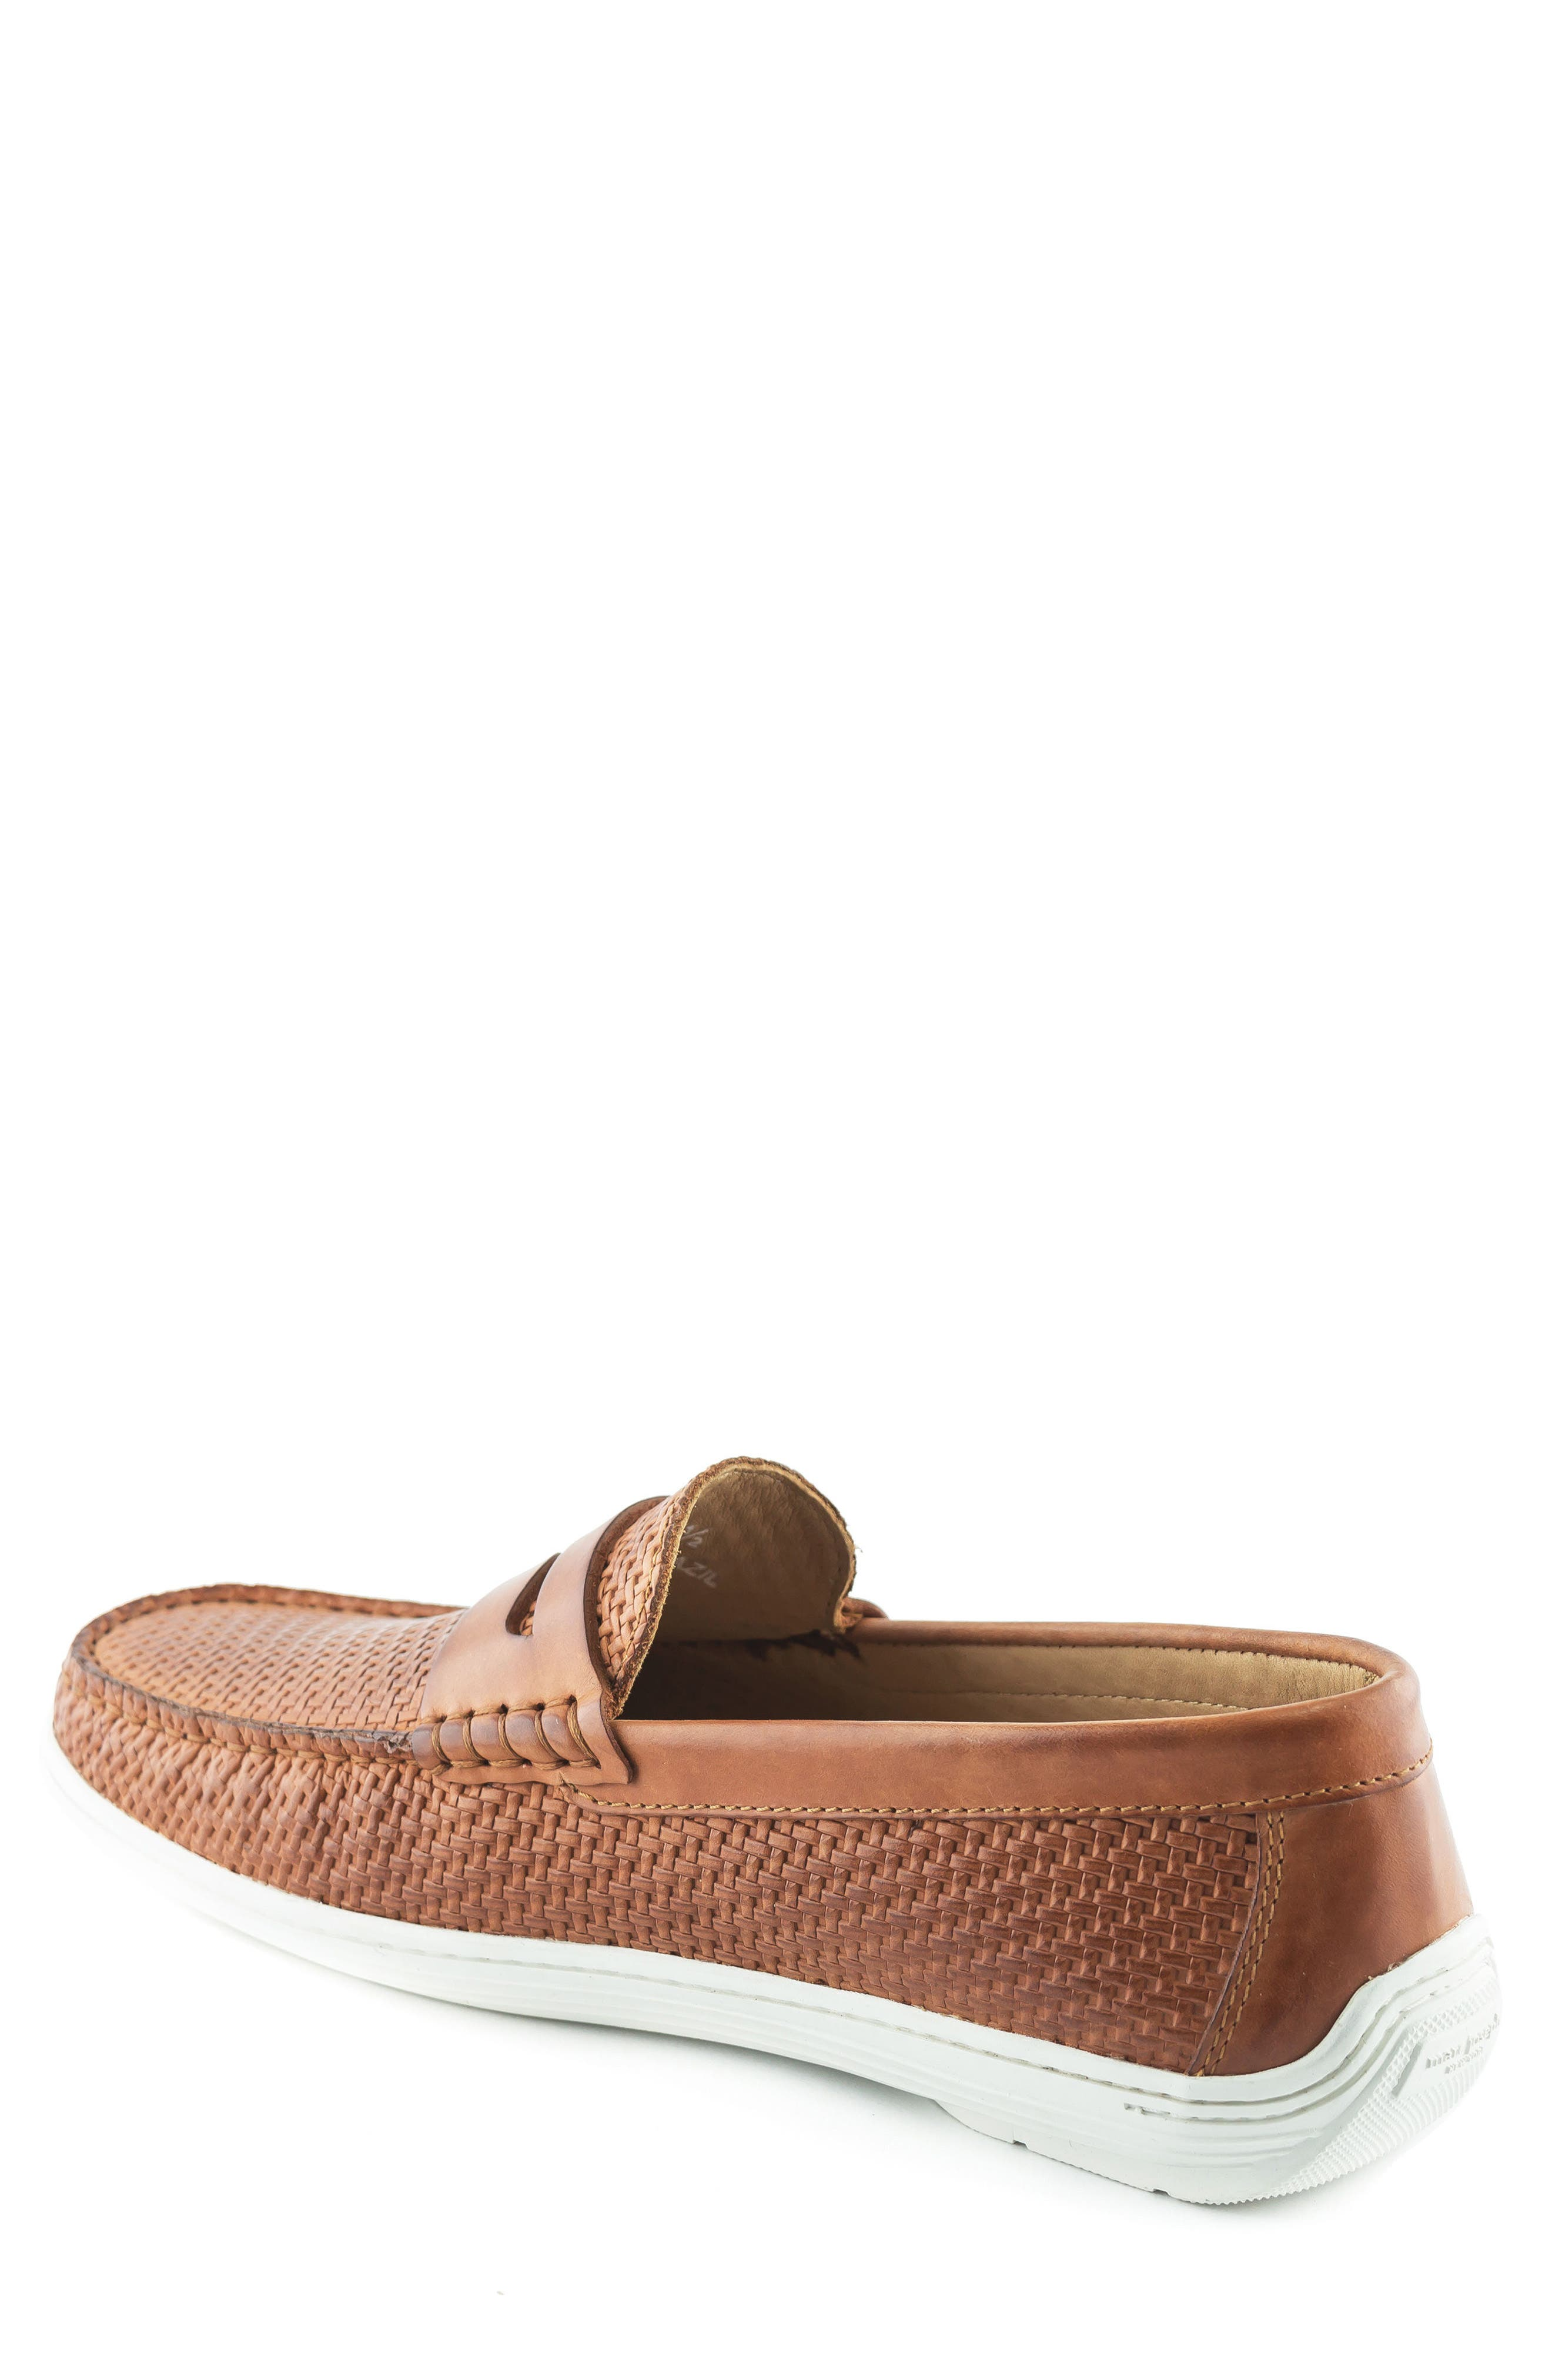 Atlantic Penny Loafer,                             Alternate thumbnail 11, color,